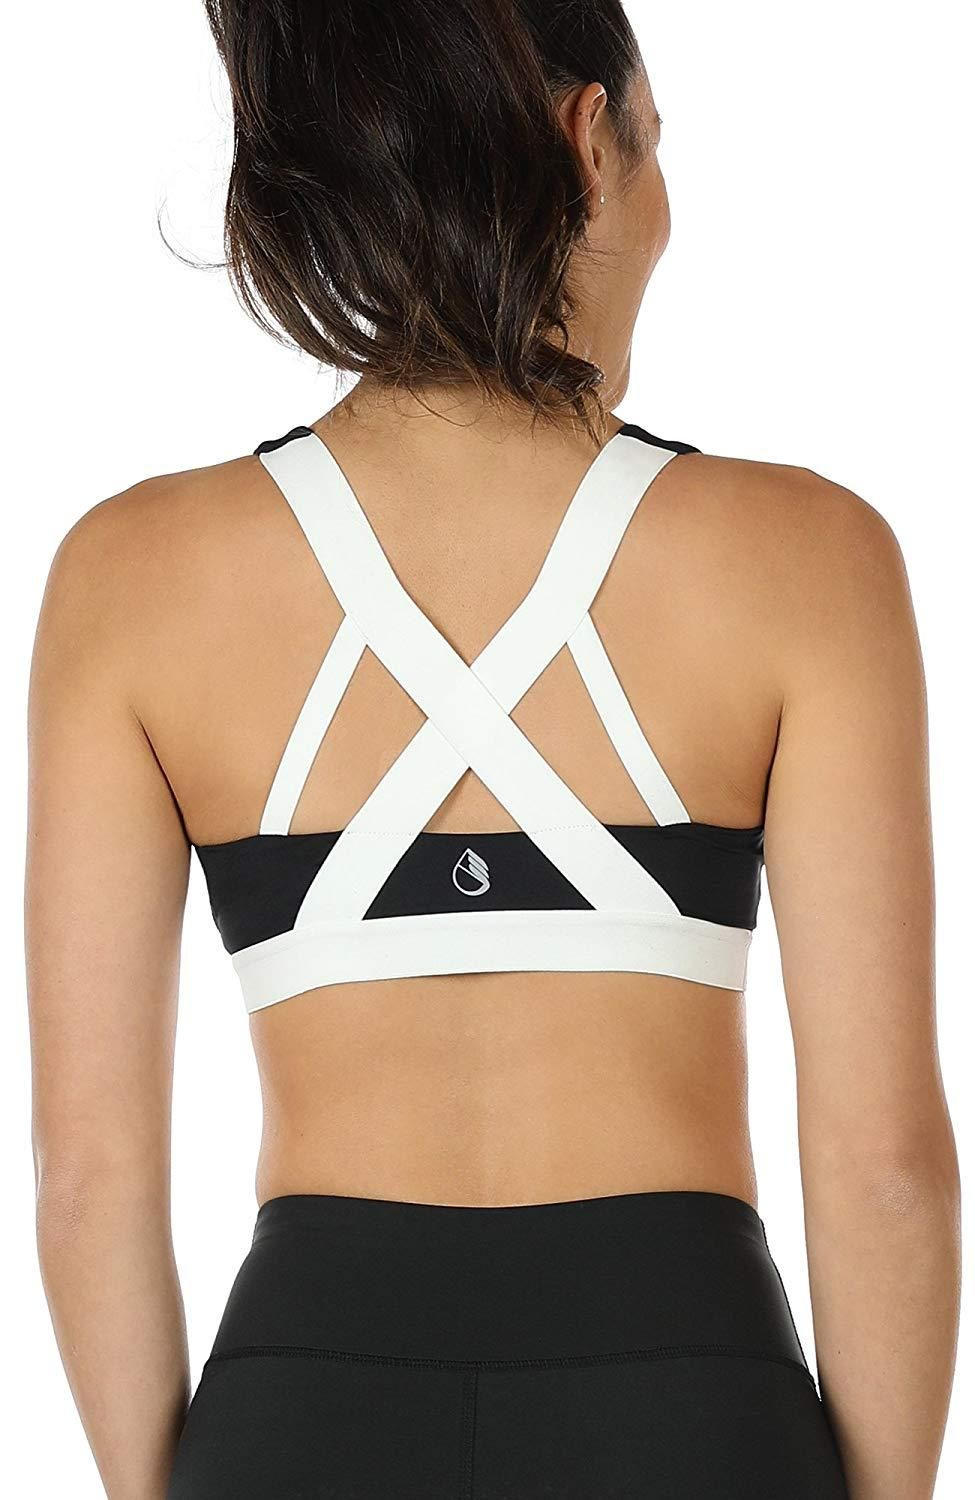 d0a5643c742 icyzone Women's Workout Yoga Clothes Activewear Racerback Strappy Sports  Bras